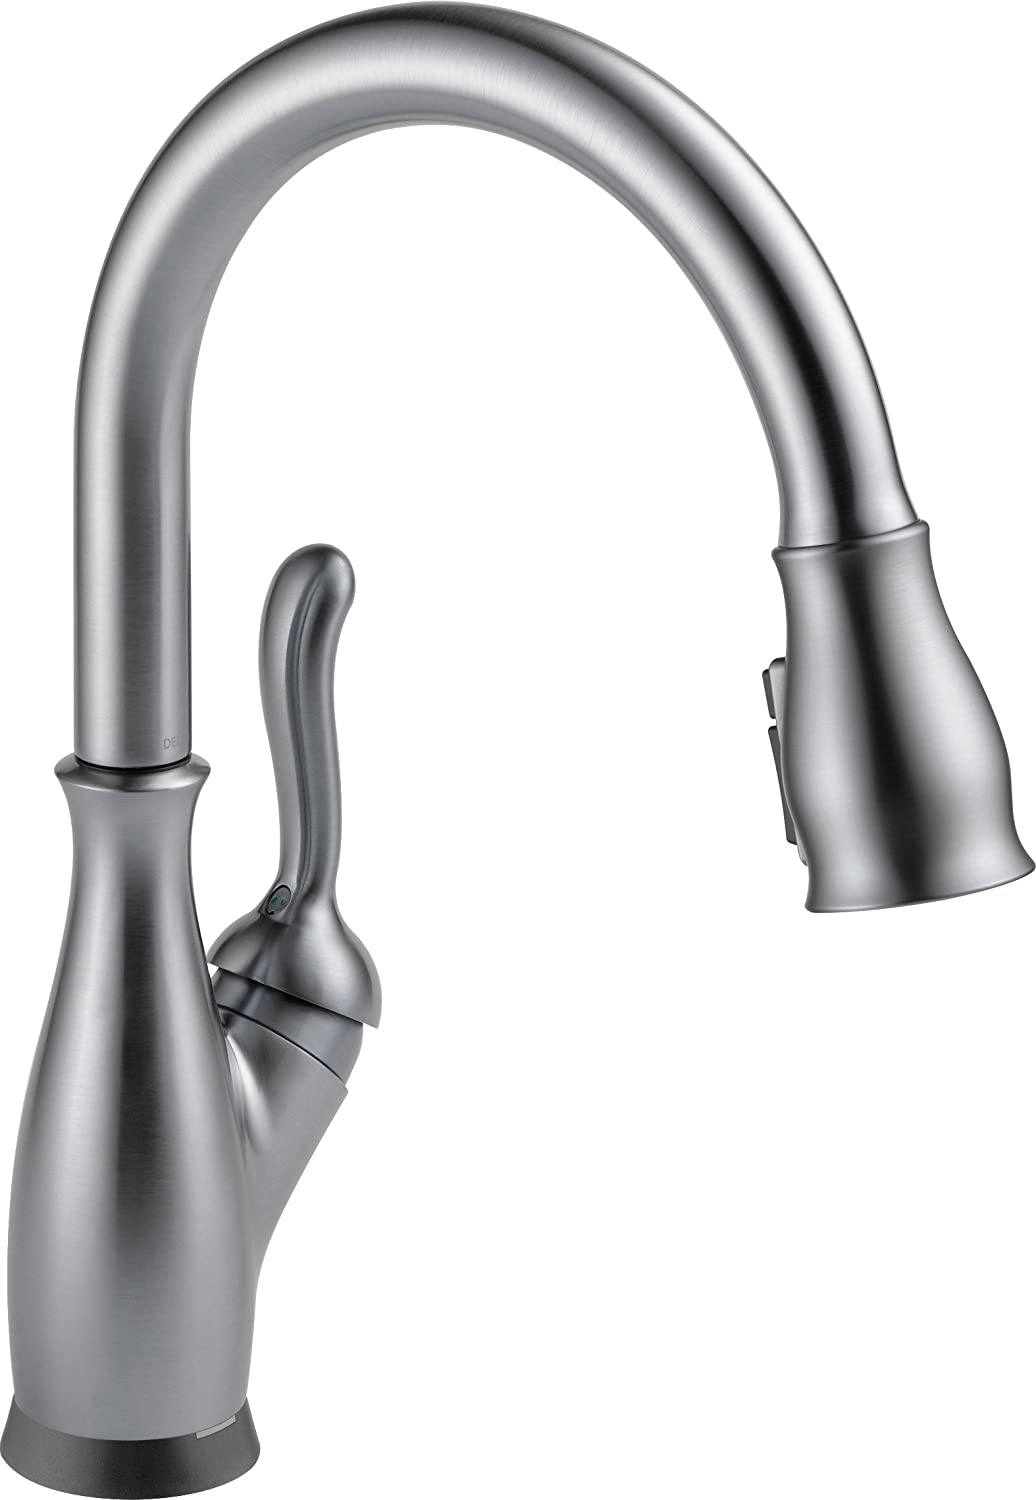 Delta Faucet Leland Single-Handle Touch Kitchen Sink Faucet with Pull Down Sprayer, Touch2O and ShieldSpray Technology, Magnetic Docking Spray Head, Arctic Stainless 9178T-AR-DST